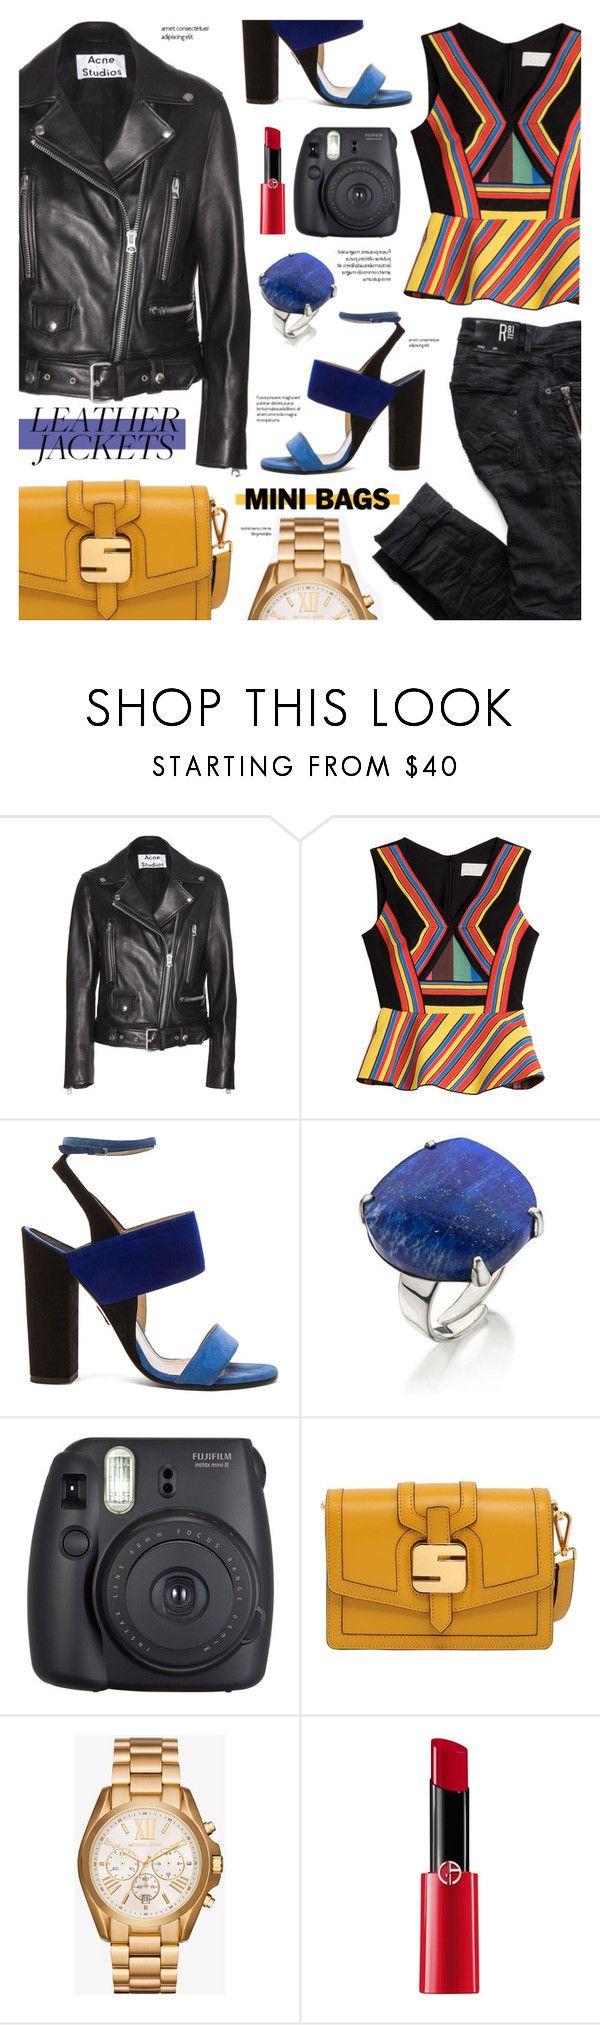 Leather jacket - street style by cly88 on Polyvore featuring Peter Pilotto, Acne Studios, Paul Andrew, Serapian, Michael Kors, Lazuli, Giorgio Armani and Fuji